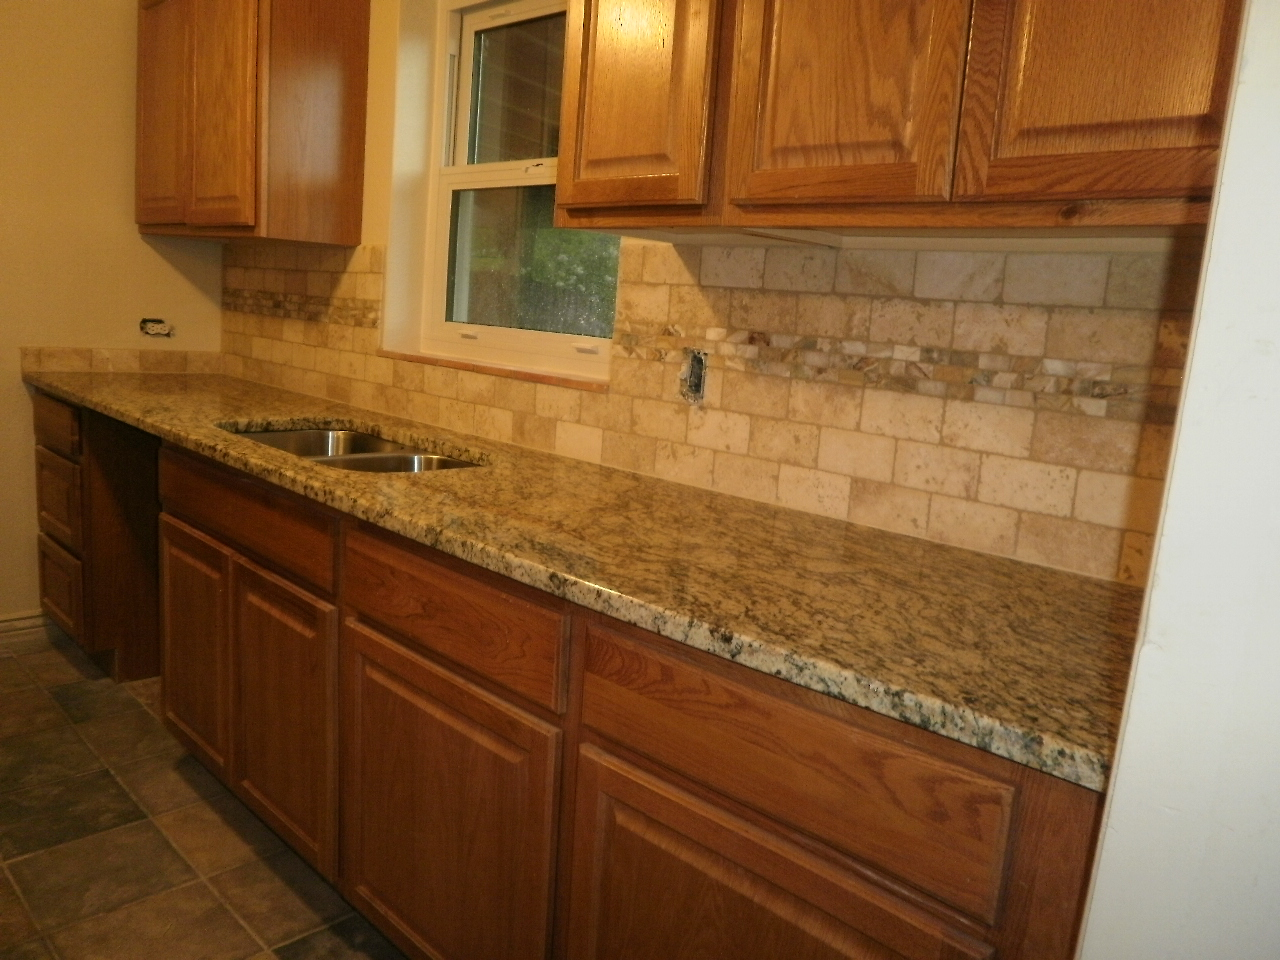 Santa cecilia granite backsplash ideas - Backsplash ideas kitchen ...